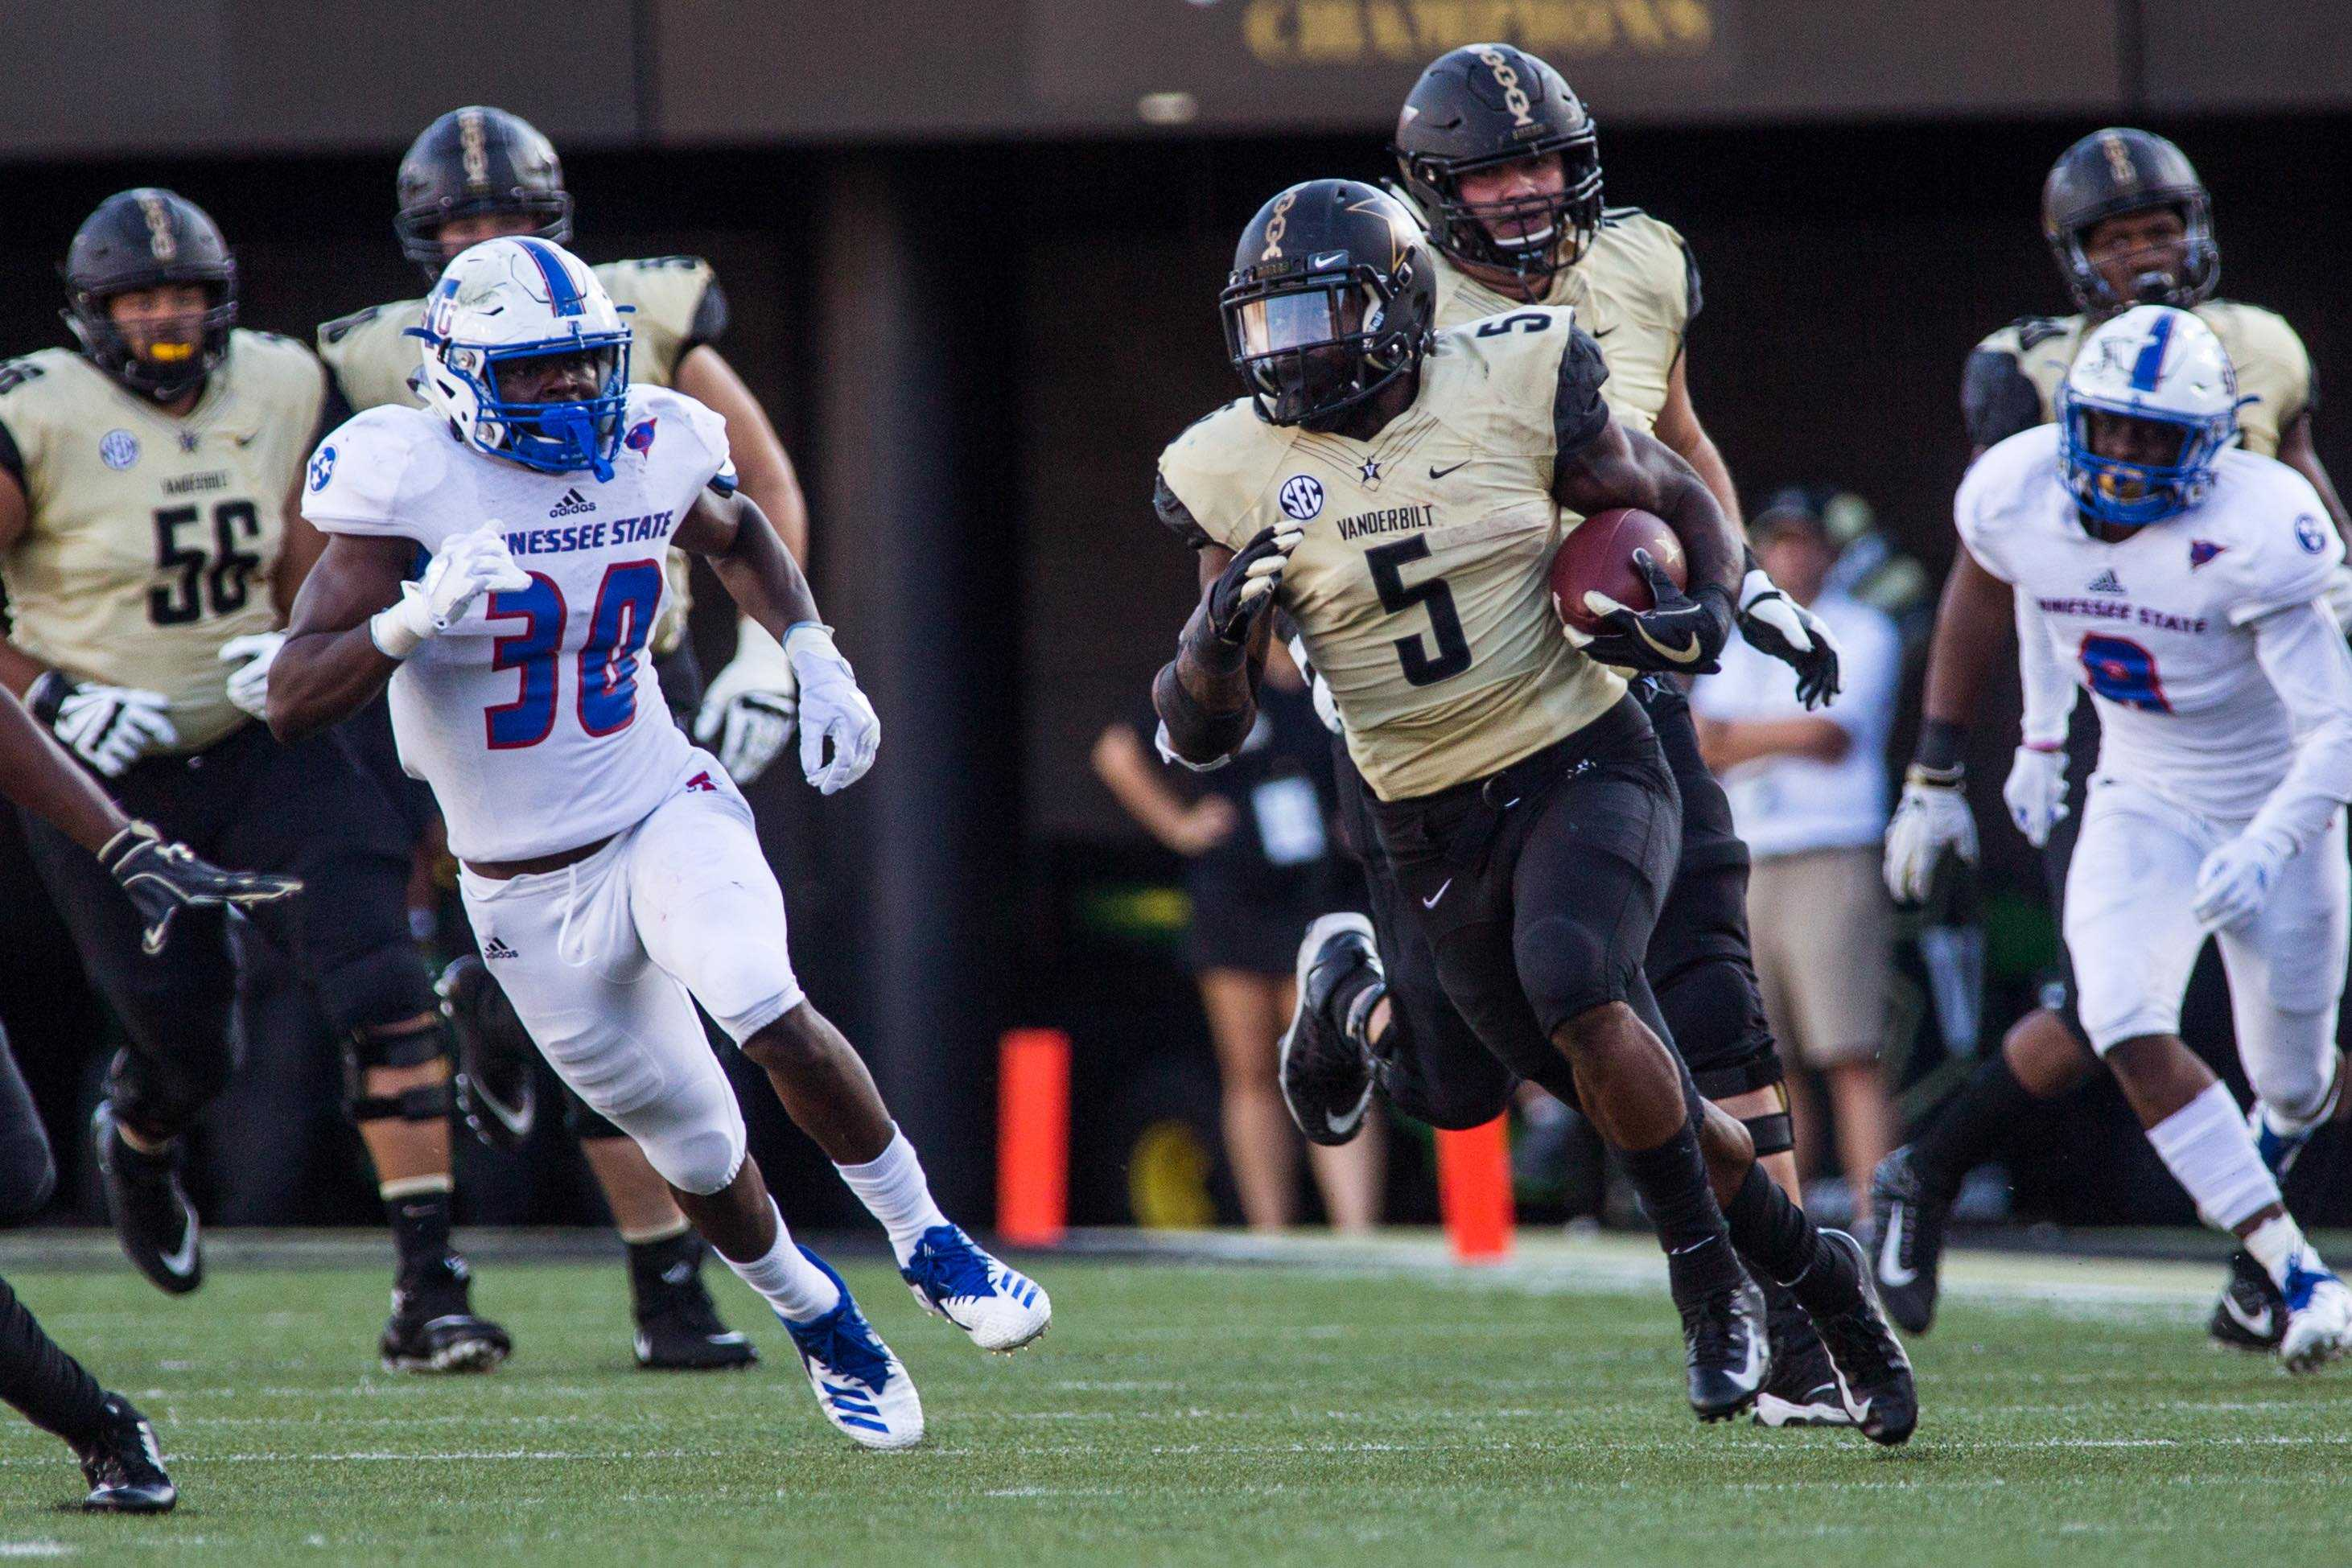 Vanderbilt plays Tennessee State in football on Saturday, September 29, 2018 at home. The Commodores won 31-27. (Photo by Claire Barnett)